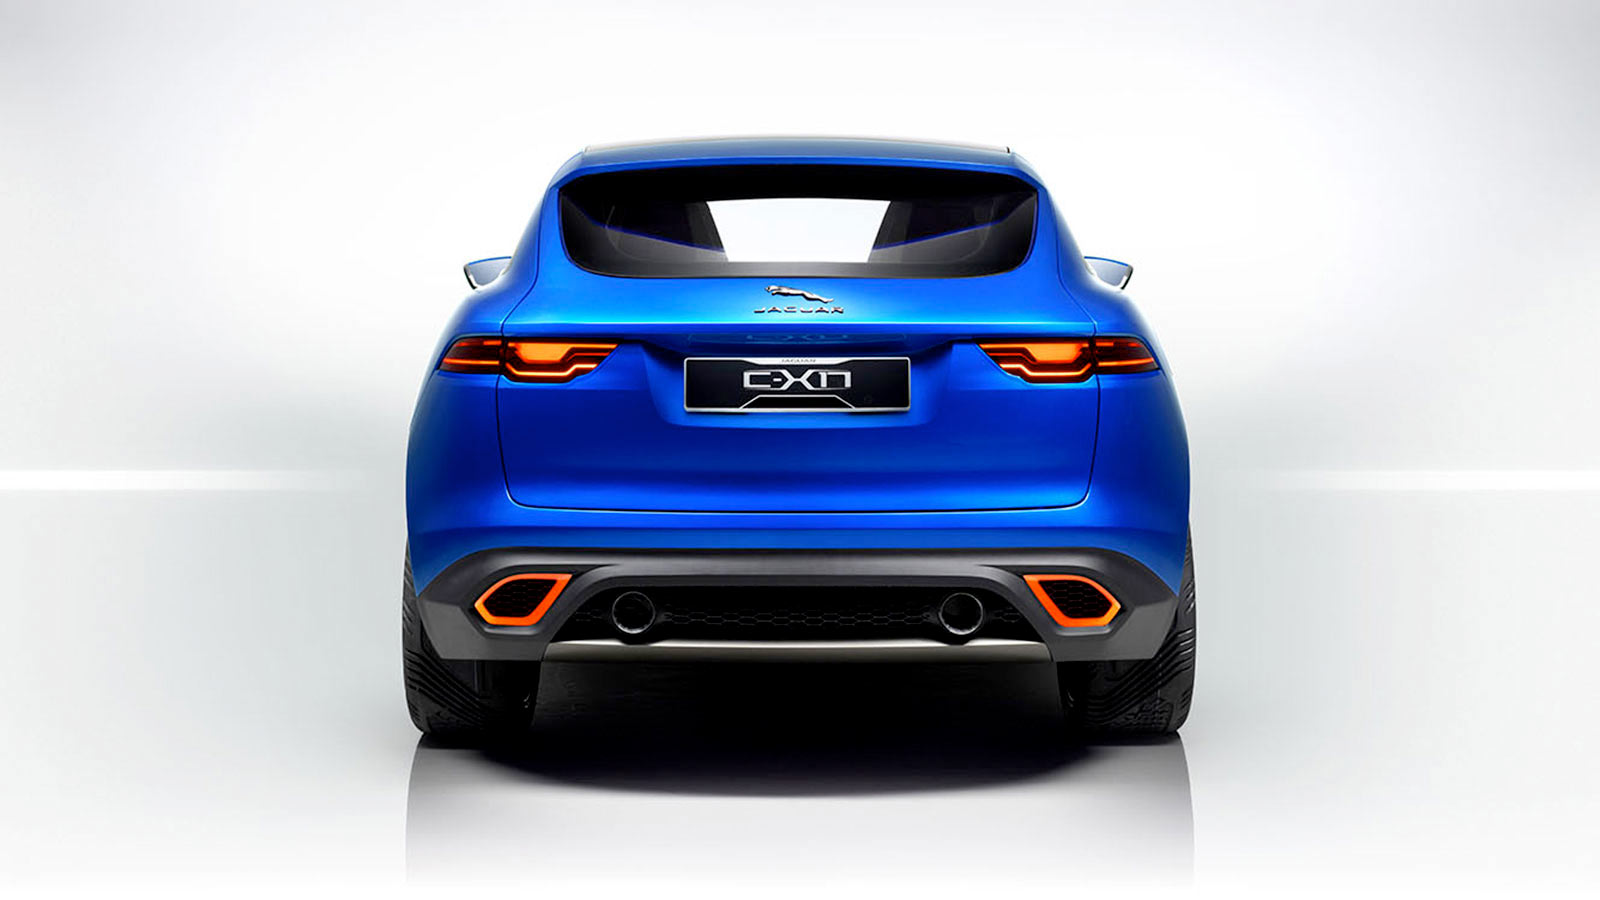 Rear shot of the Jaguar C-X17 in blue.